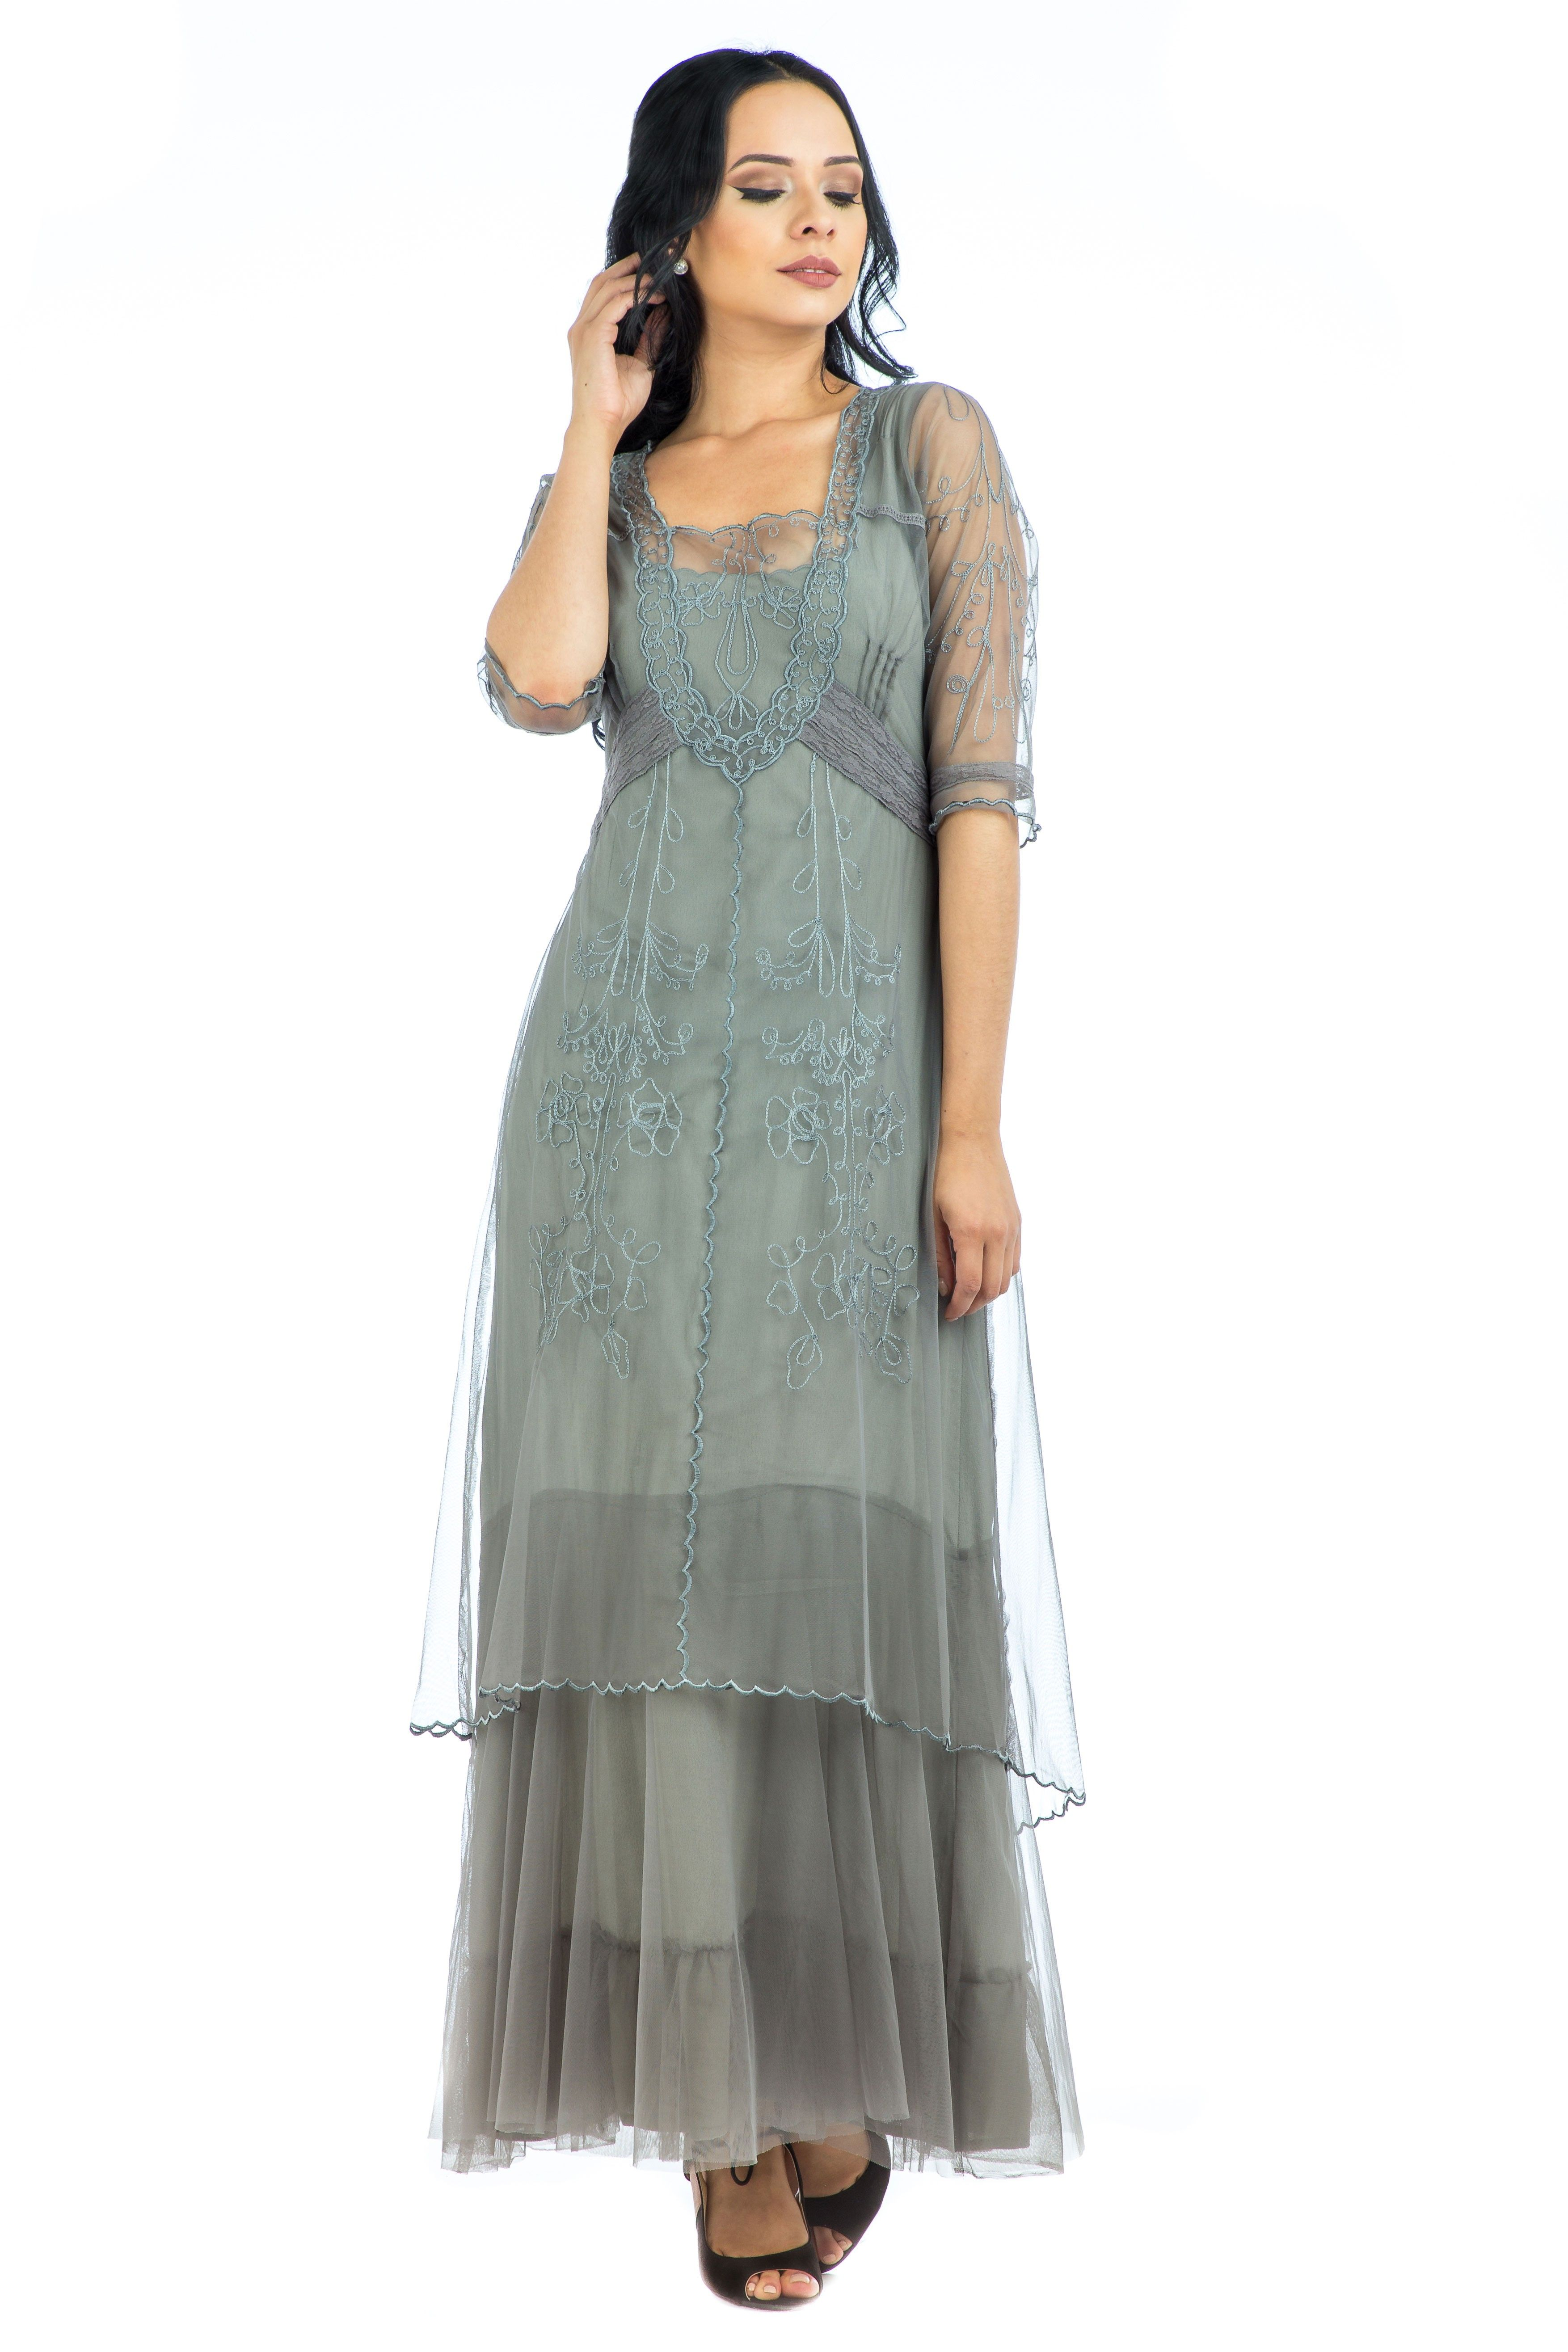 Mother of the groom dresses afternoon wedding  Victoria Vintage Style Party Gown in Smoke by Nataya will allow you